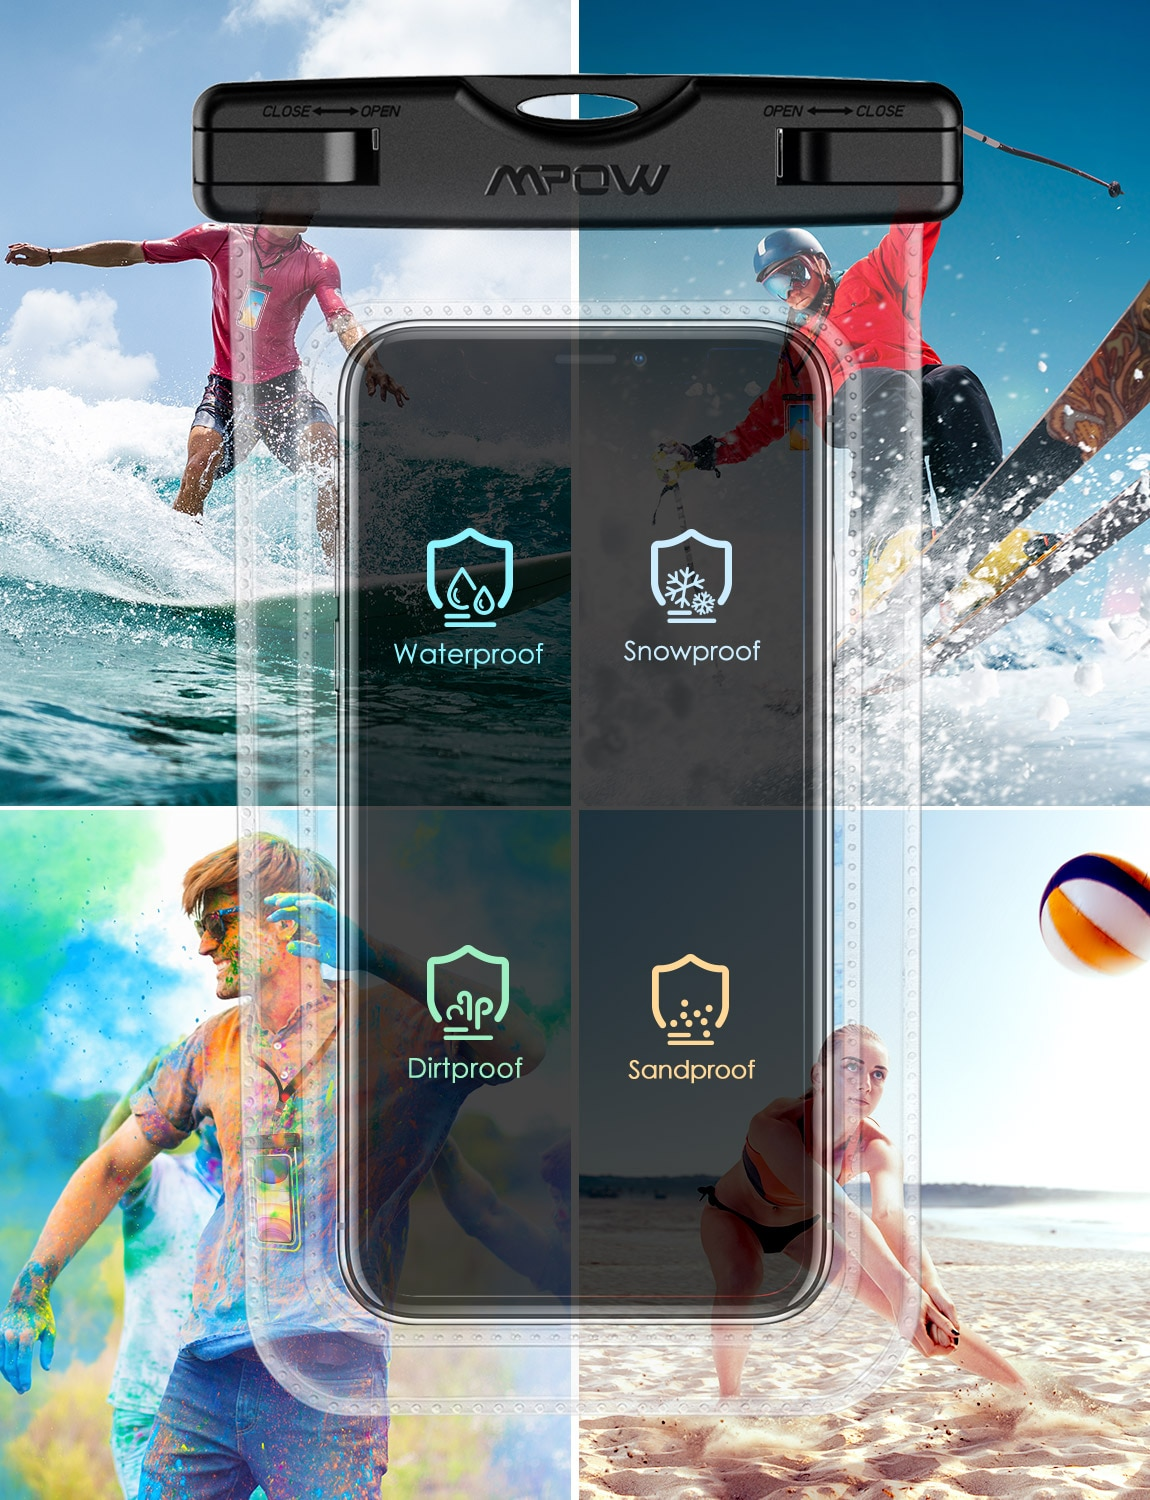 Haaef7a41240b432790905709a8a78fa0z - 2PCS Mpow 097 IPX8 Waterproof Phone Bag Pouch Case Universal for 7.0 inch Phones Home Button Cutout Take Photo Underwater IP68